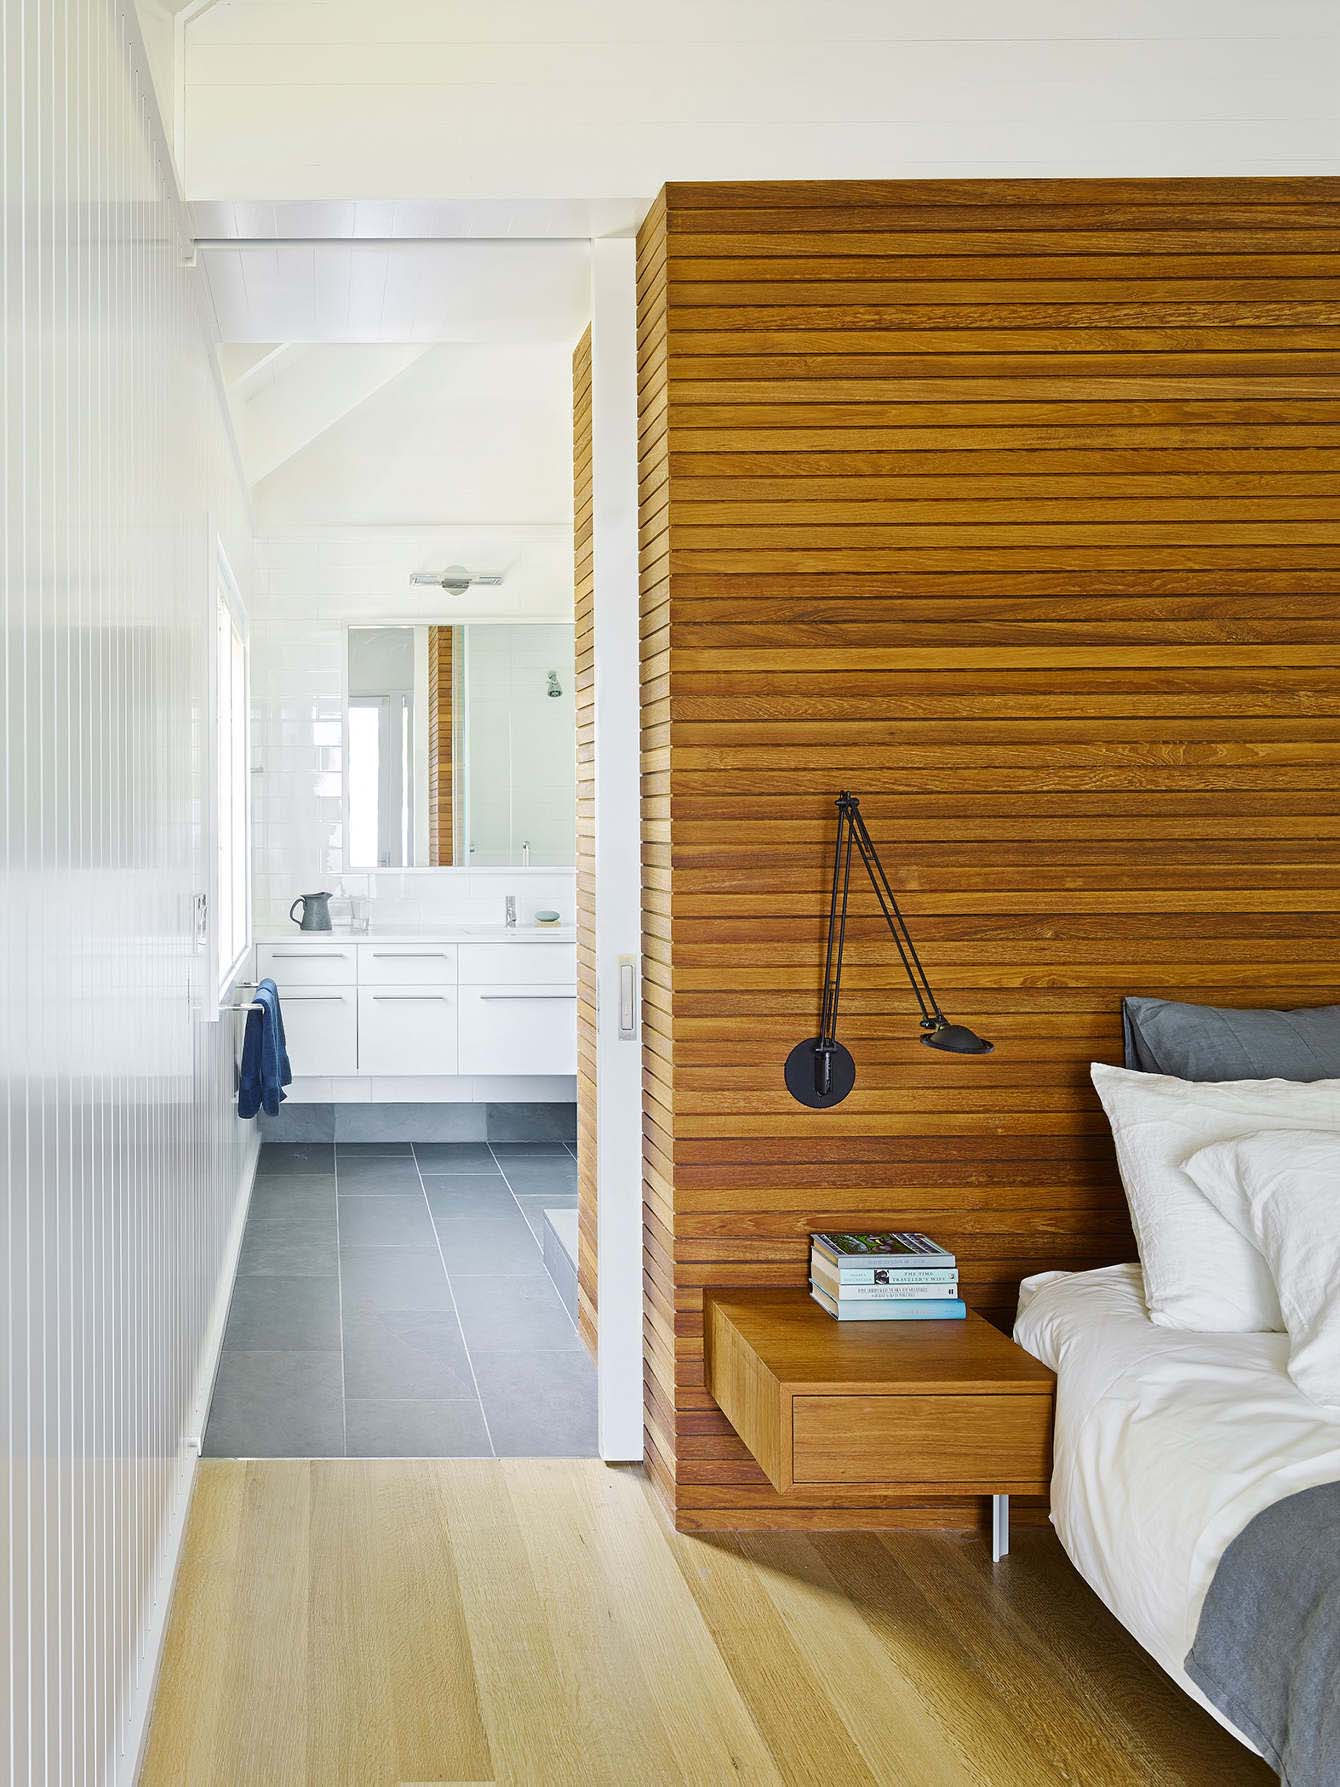 Waters Edge House-Robert Young Architects-16-1 Kindesign